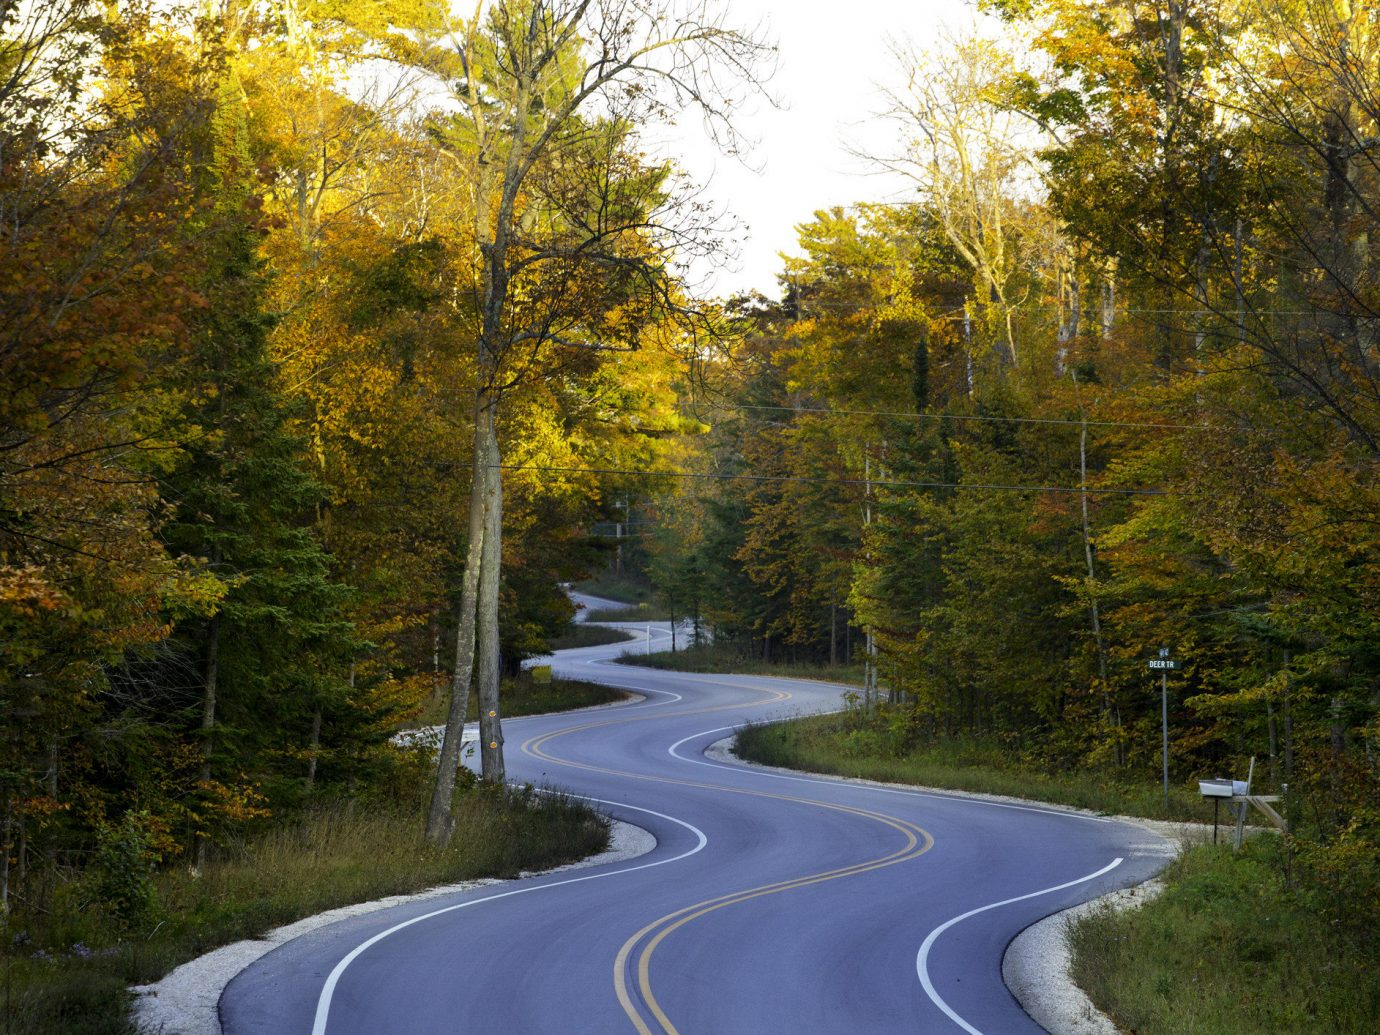 Road Trips Trip Ideas Weekend Getaways tree grass outdoor road leaf Nature yellow autumn woody plant infrastructure water plant Forest path scene way sky biome landscape reflection asphalt temperate broadleaf and mixed forest wooded woodland surrounded traveling